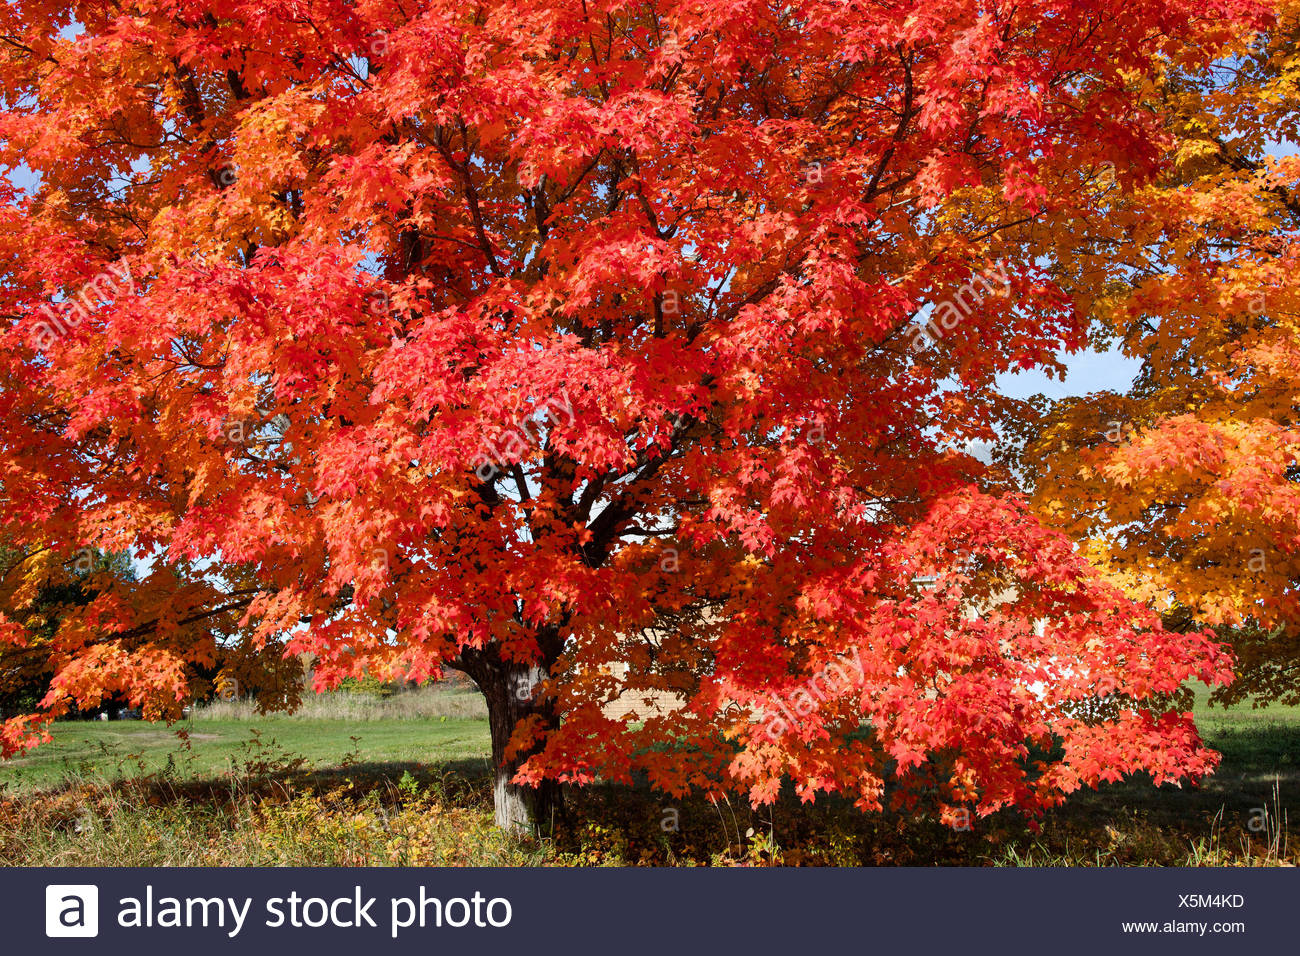 Maple tree, Doctors Hill, Gagetown, New Brunswick, Canada - Stock Image